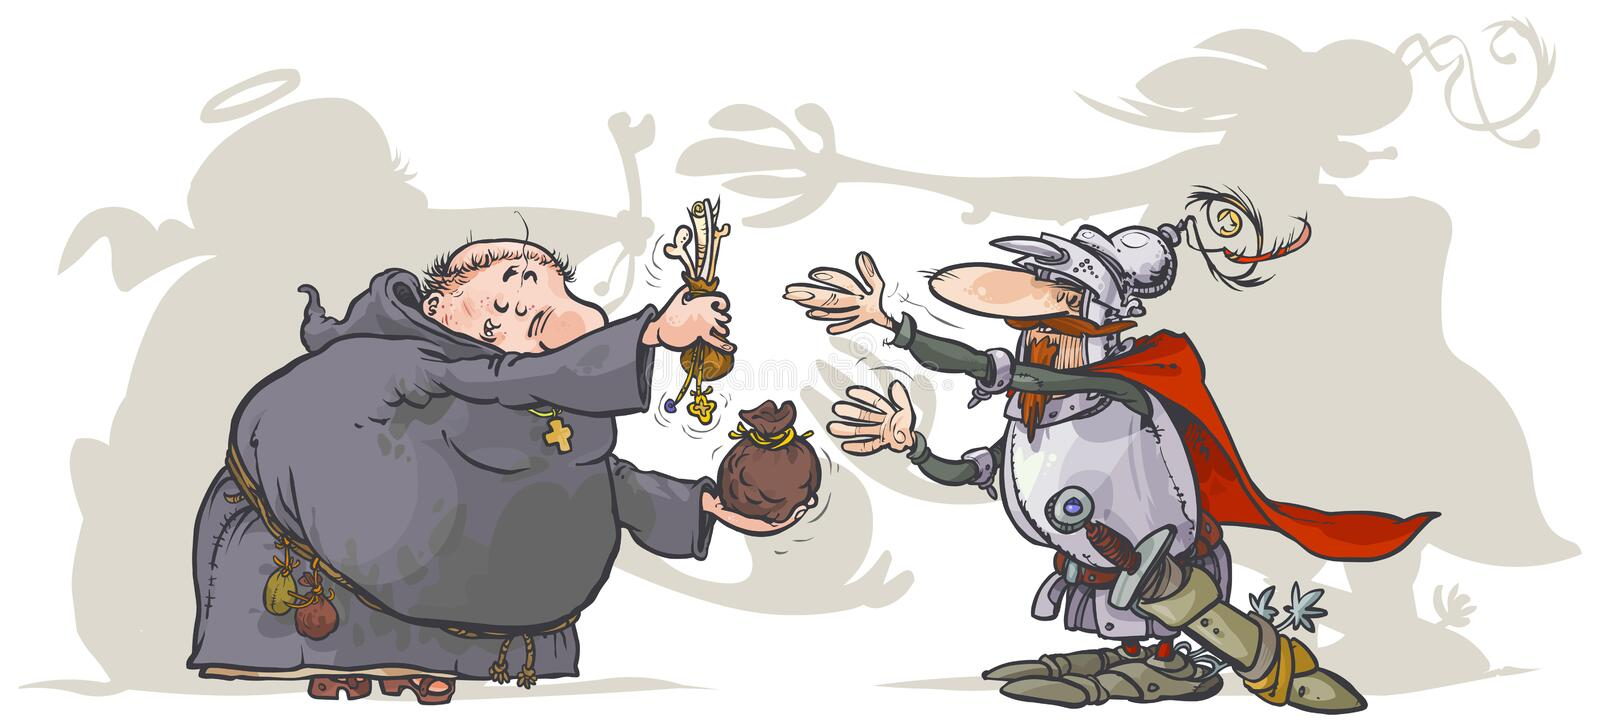 Monk, selling a holy relics to a Knight. royalty free illustration